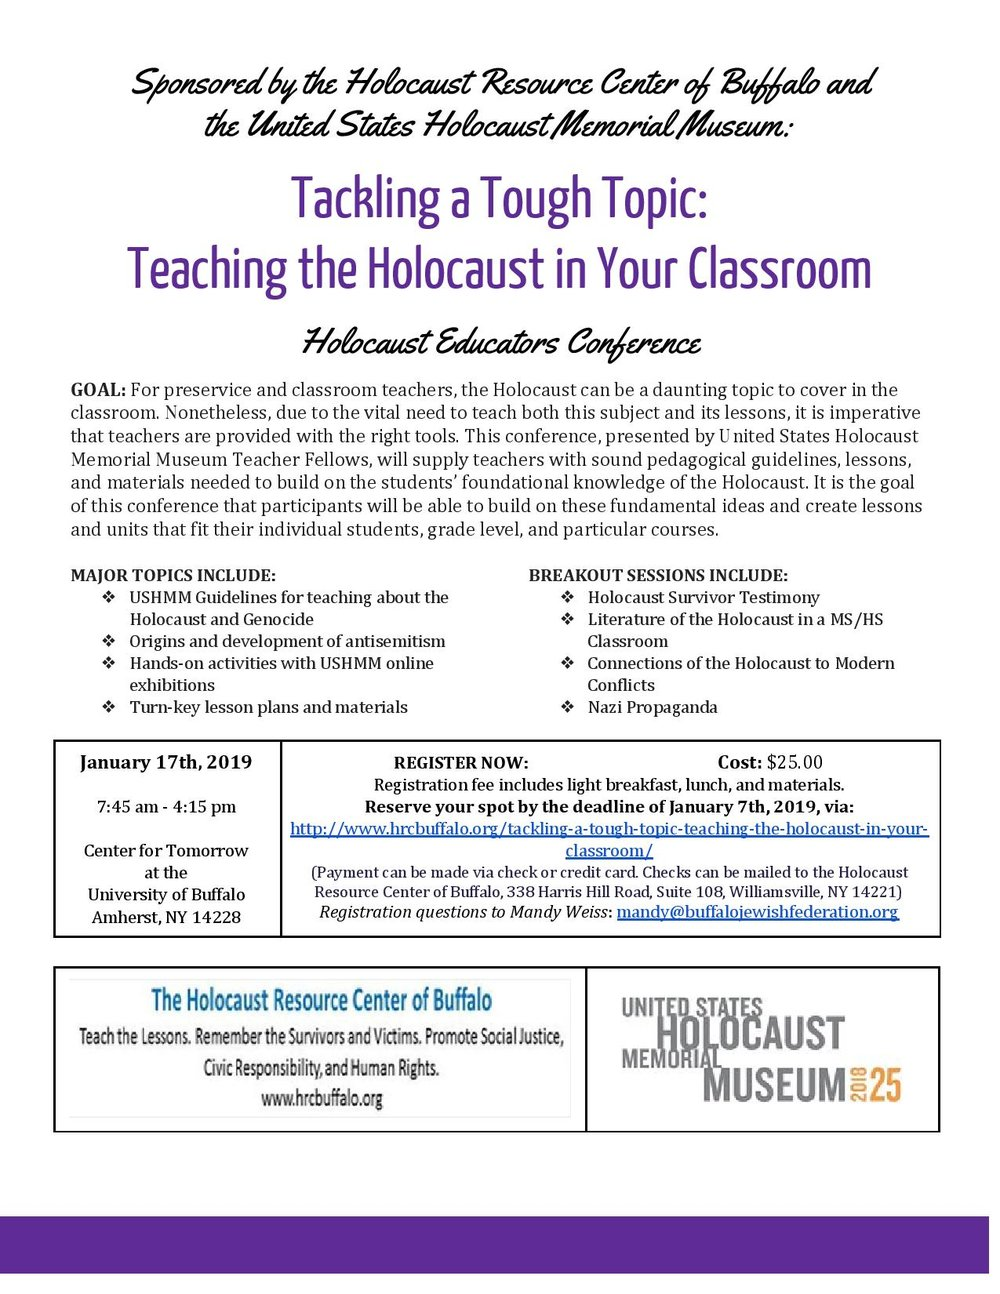 Flyer for Conference_Tackling a Tough Topic-page-001.jpg